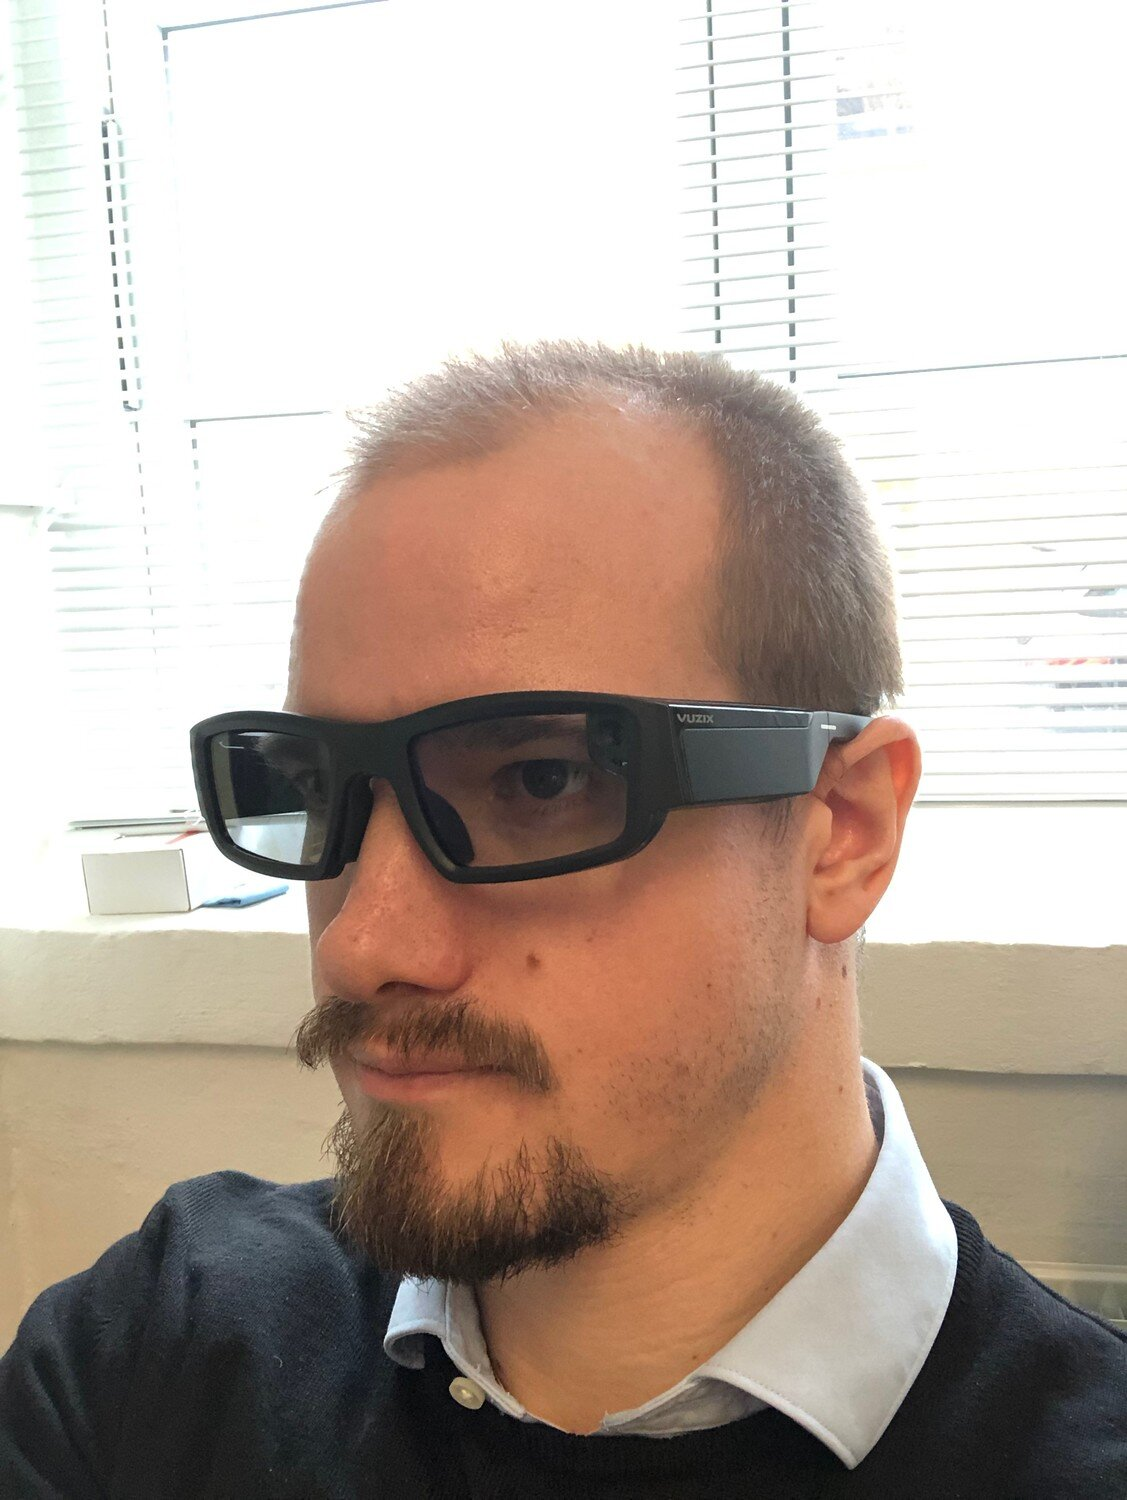 Image_Of_Vuzix_On_Person